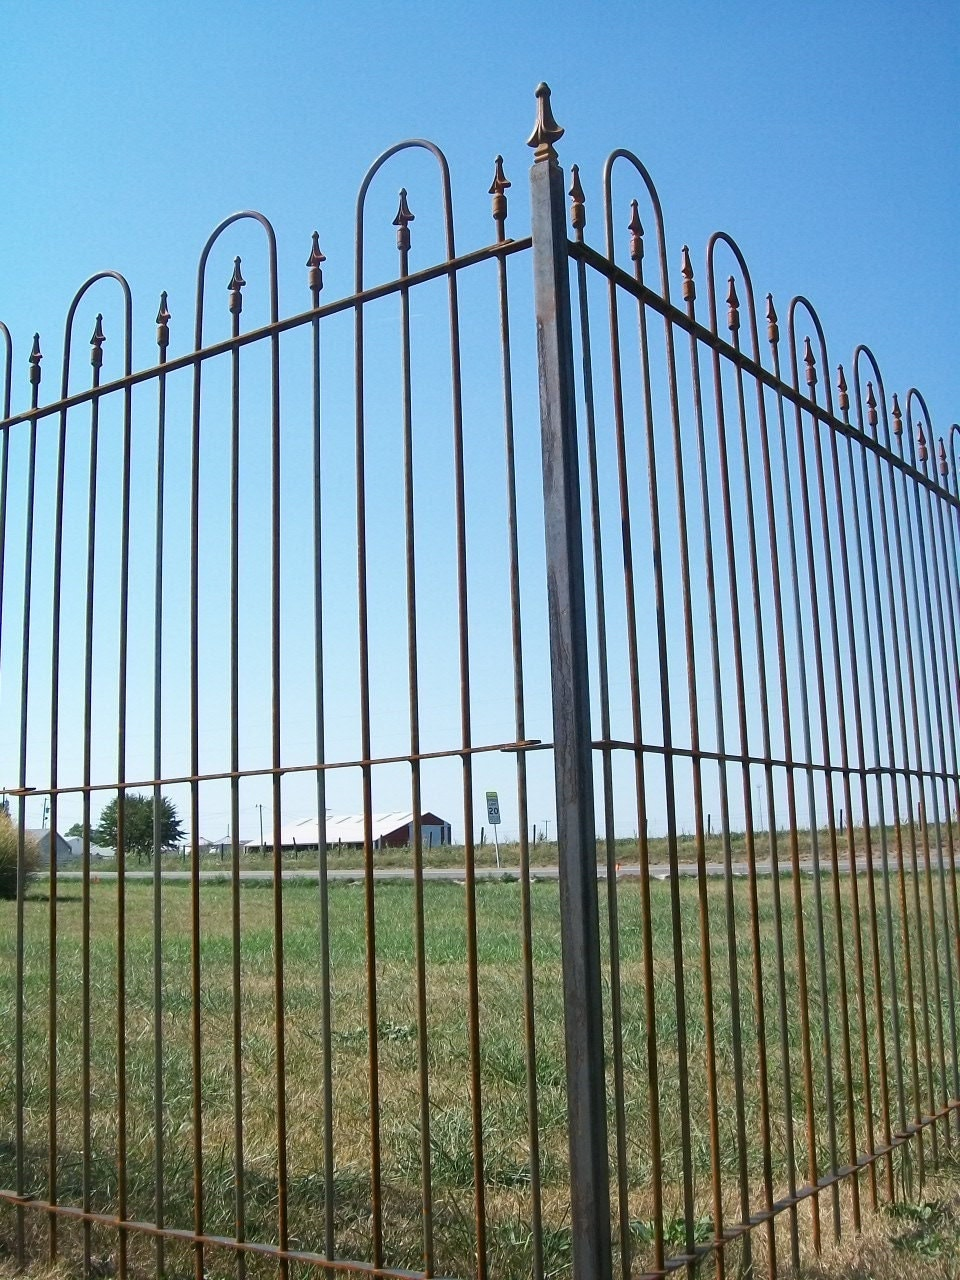 6 Tall Interlocking Solid Steel Fence Panels Wrought